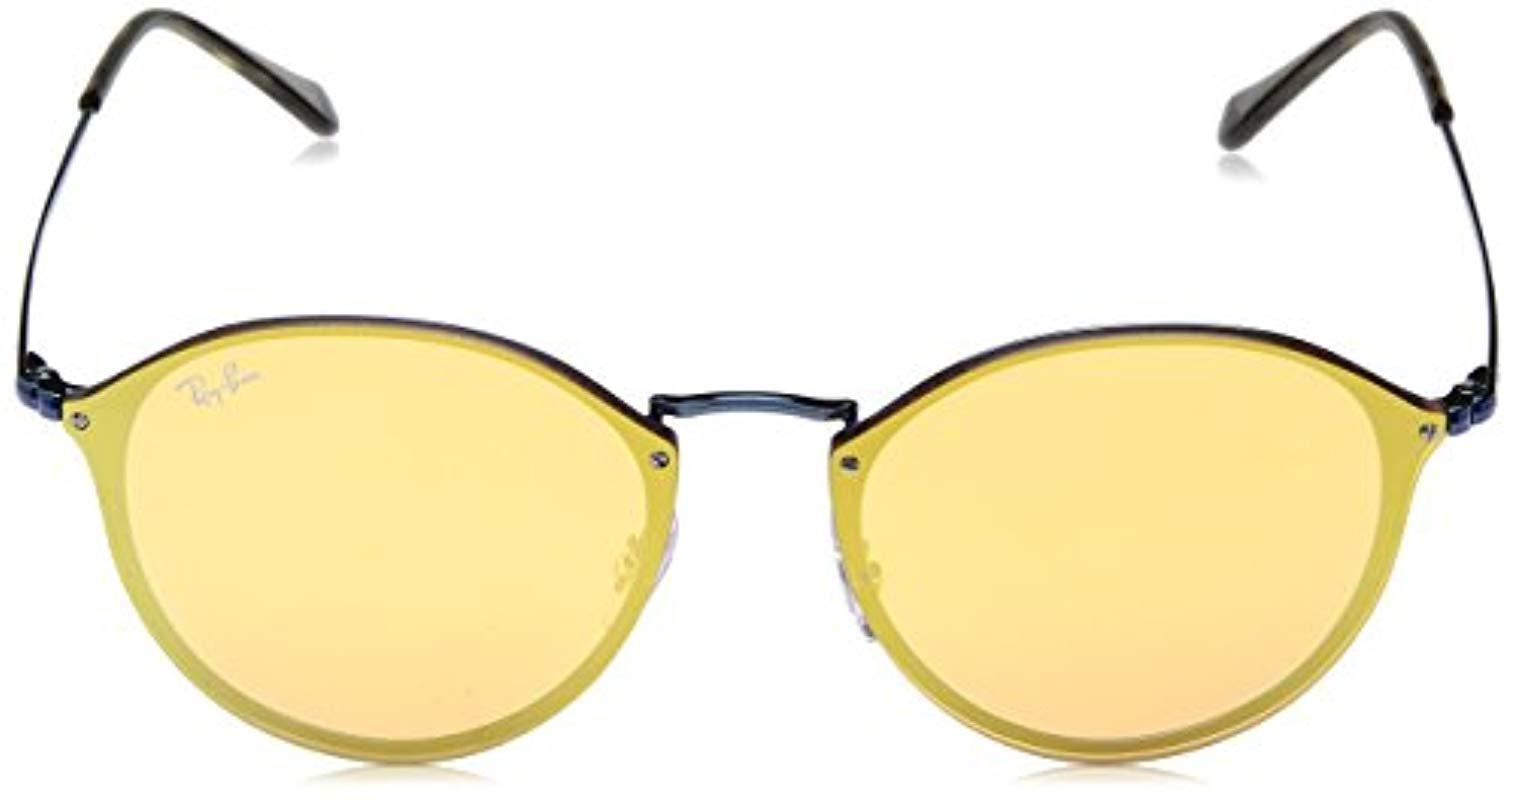 def074669d Ray-Ban - Blue Unisex Rb3574n Round Sunglasses - Lyst. View fullscreen